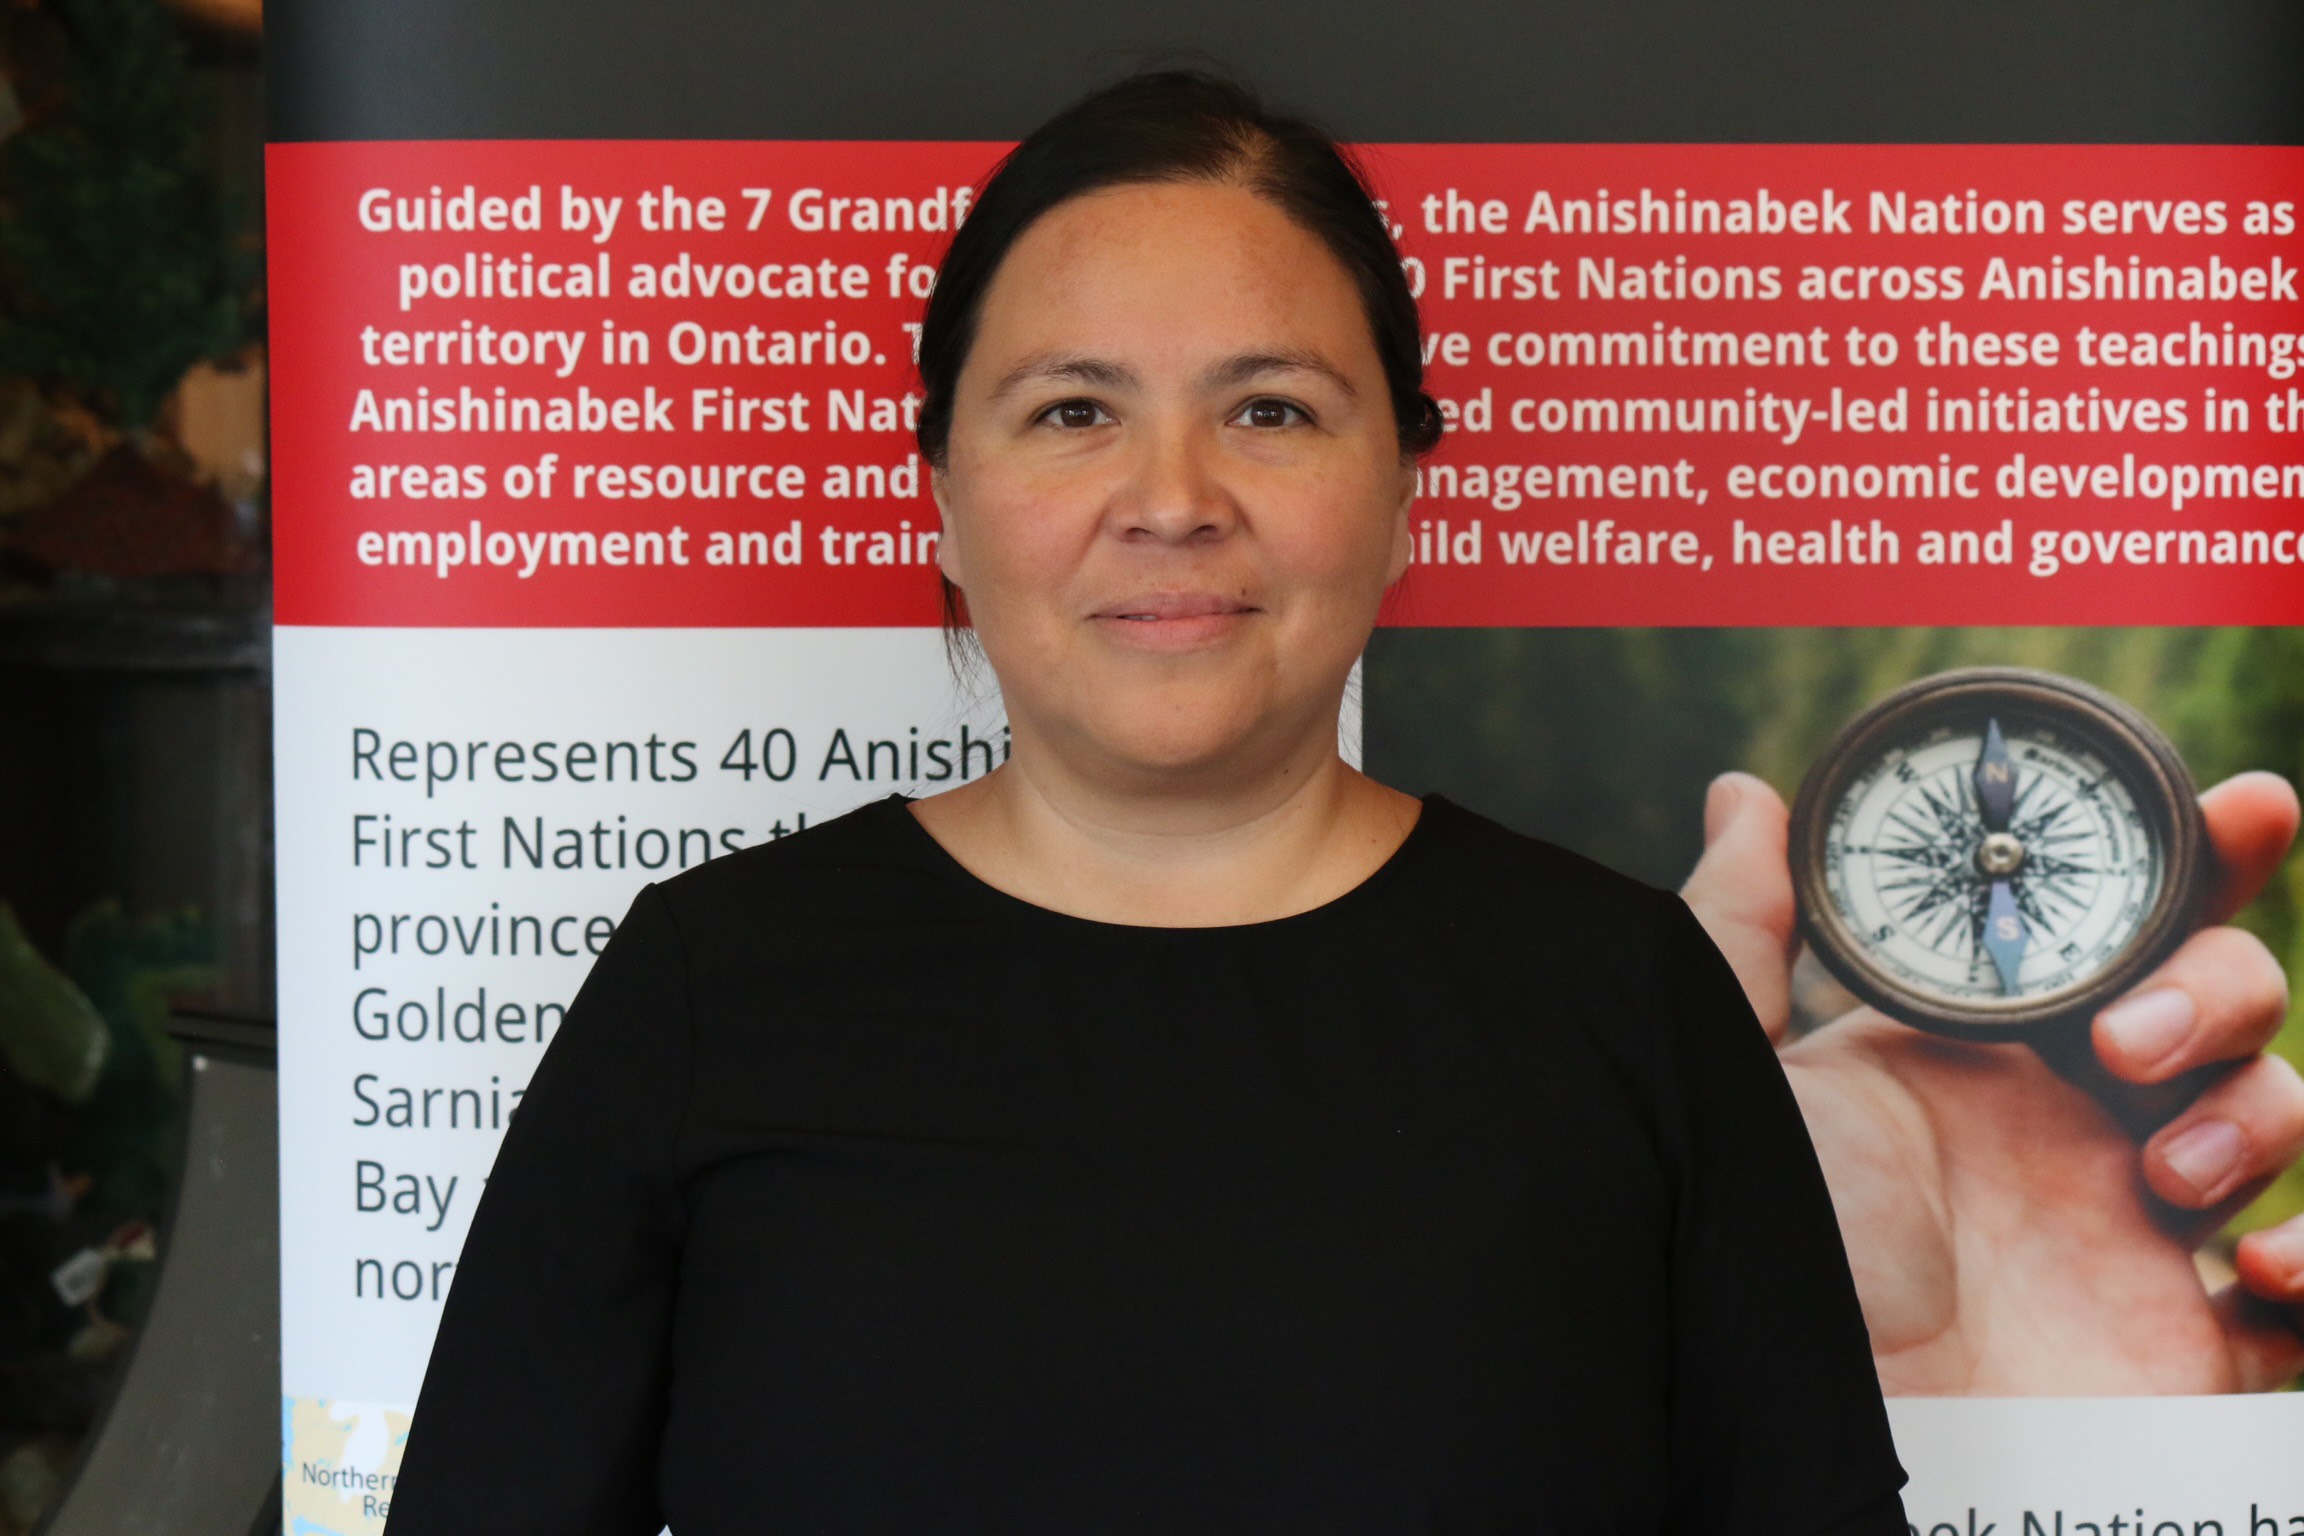 New Chief Executive Officer for the Anishinabek Nation secretariat